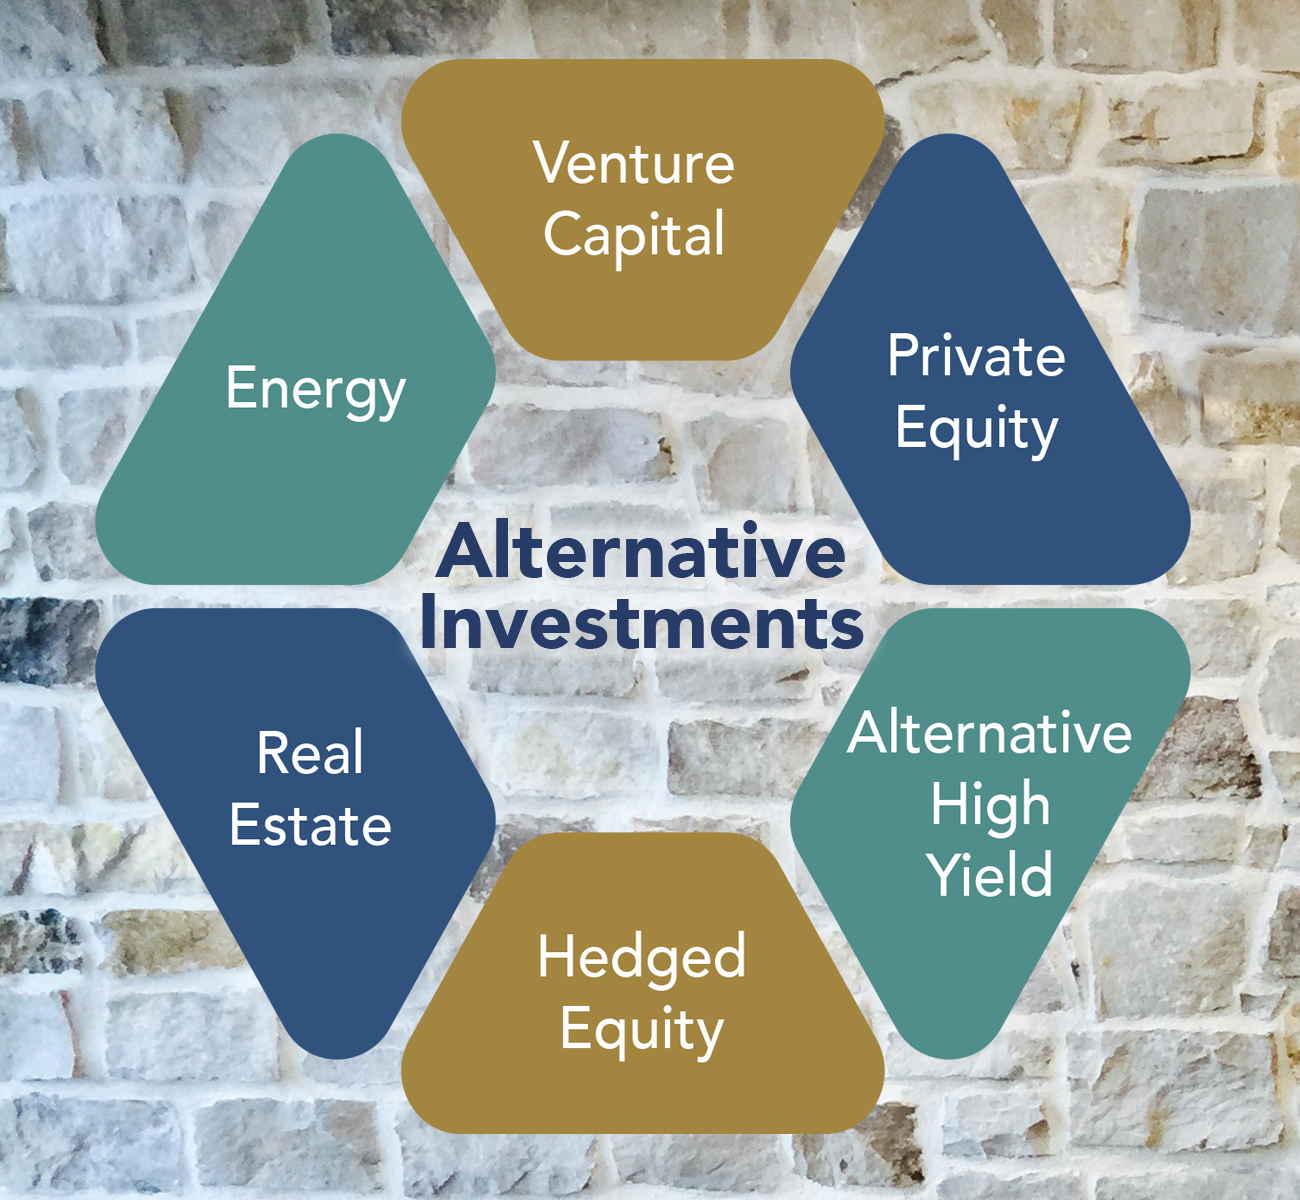 Alternative Investments at a Glance